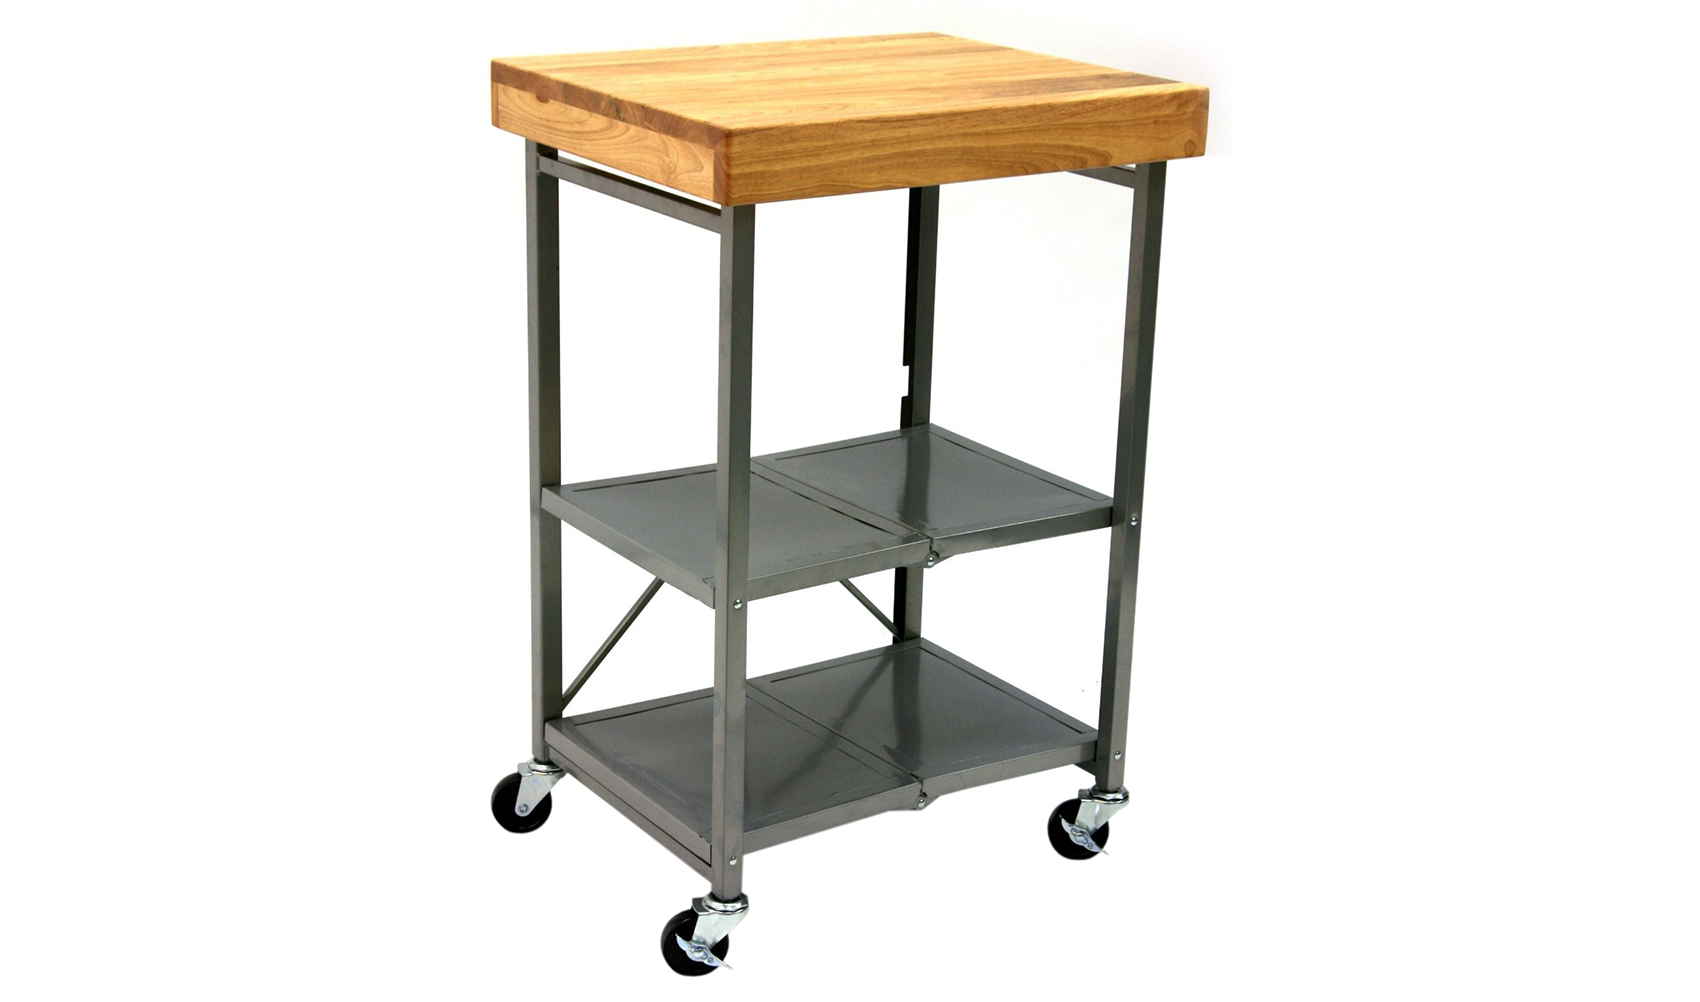 Origami RBT-02 Kitchen Cart